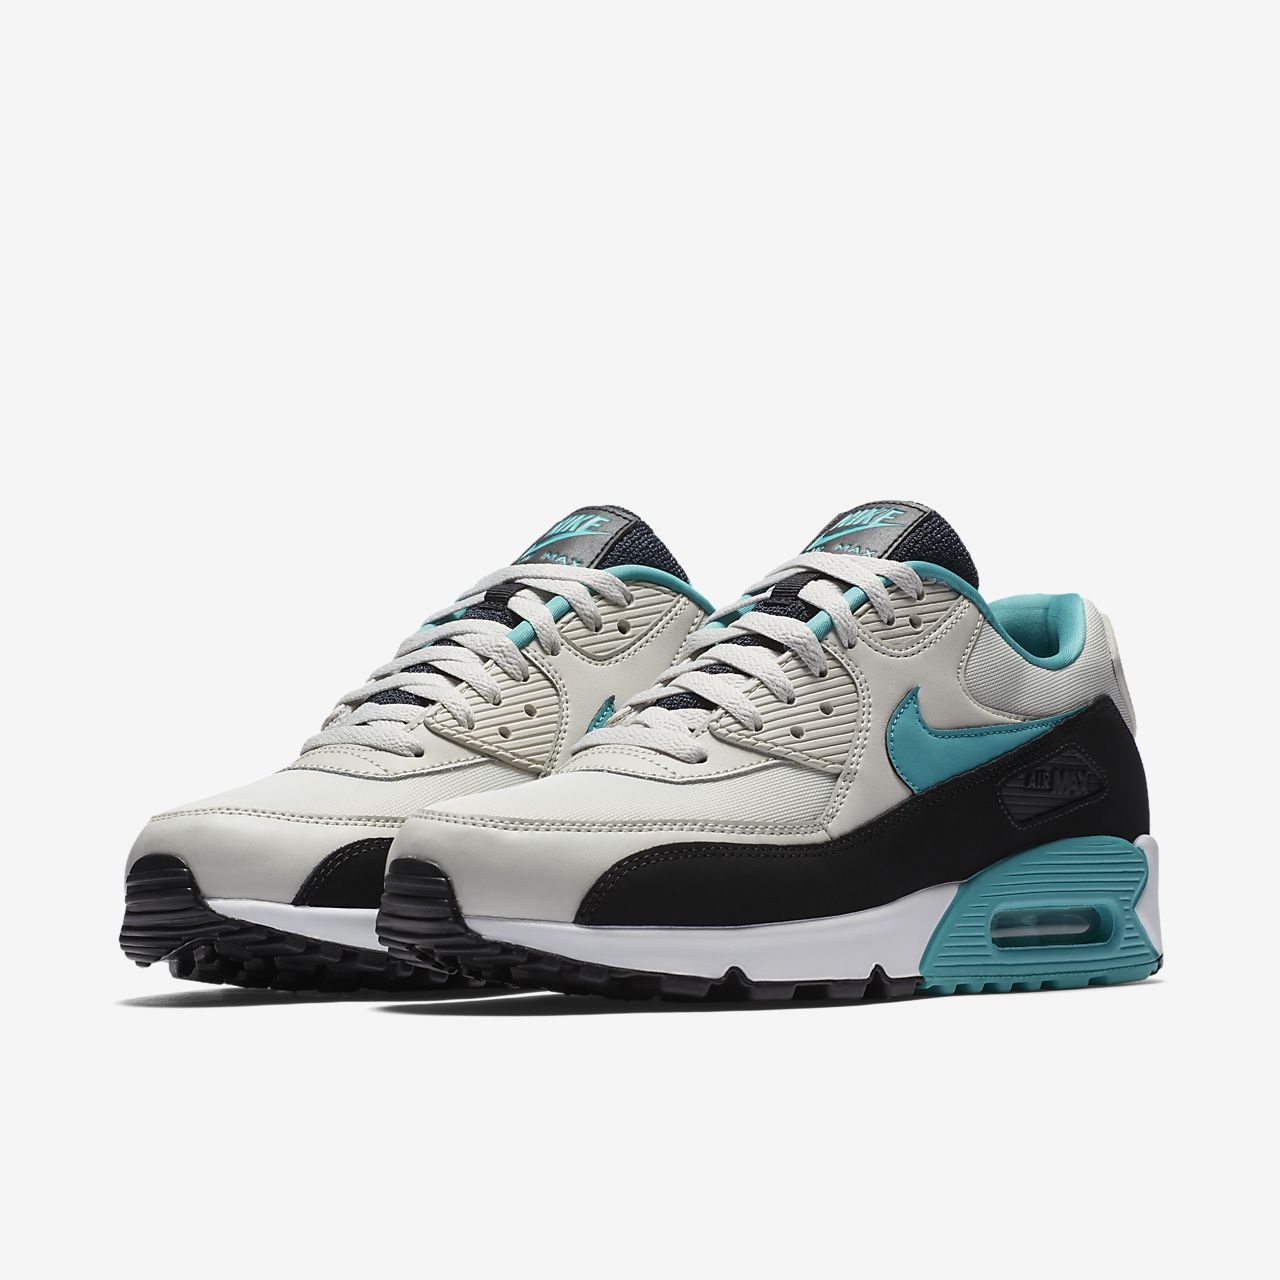 NIKE AIR MAX 90 SHOES  MENS ESSENTIAL SNEAKERS  LIGHT BONE / WHITE / TURQUOISE